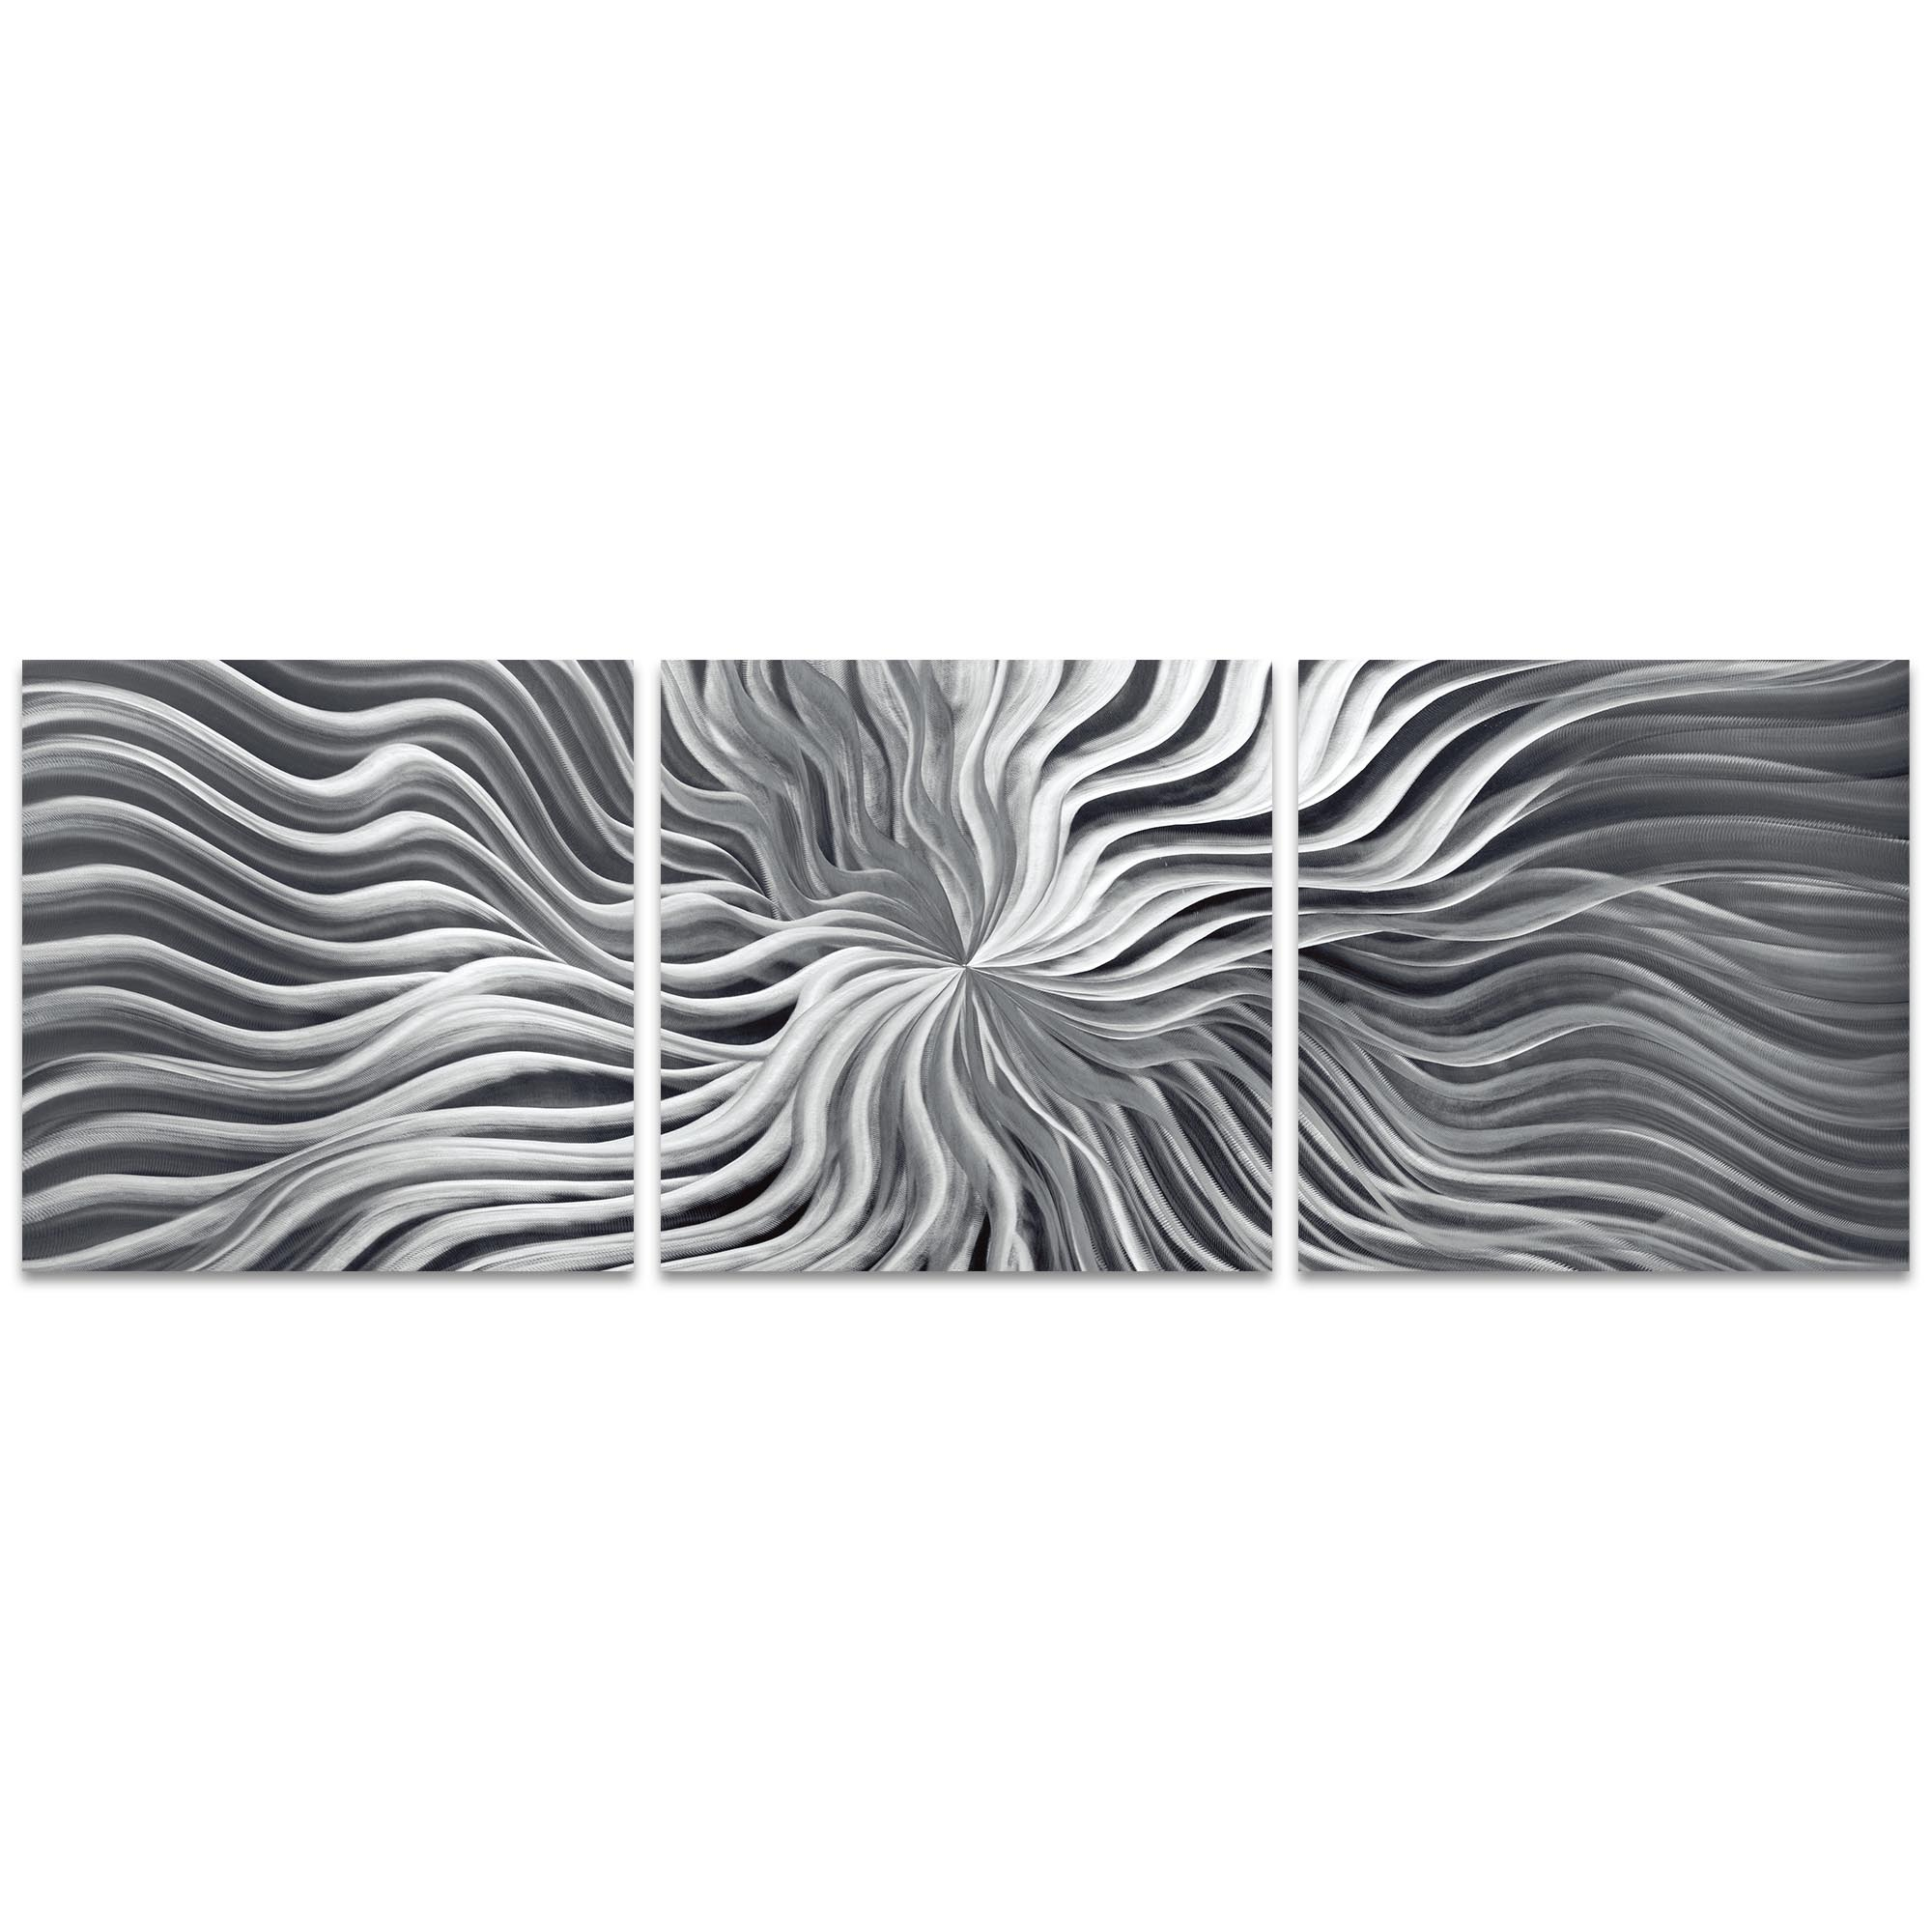 Flexure Triptych 38x12in. Metal or Acrylic Contemporary Decor